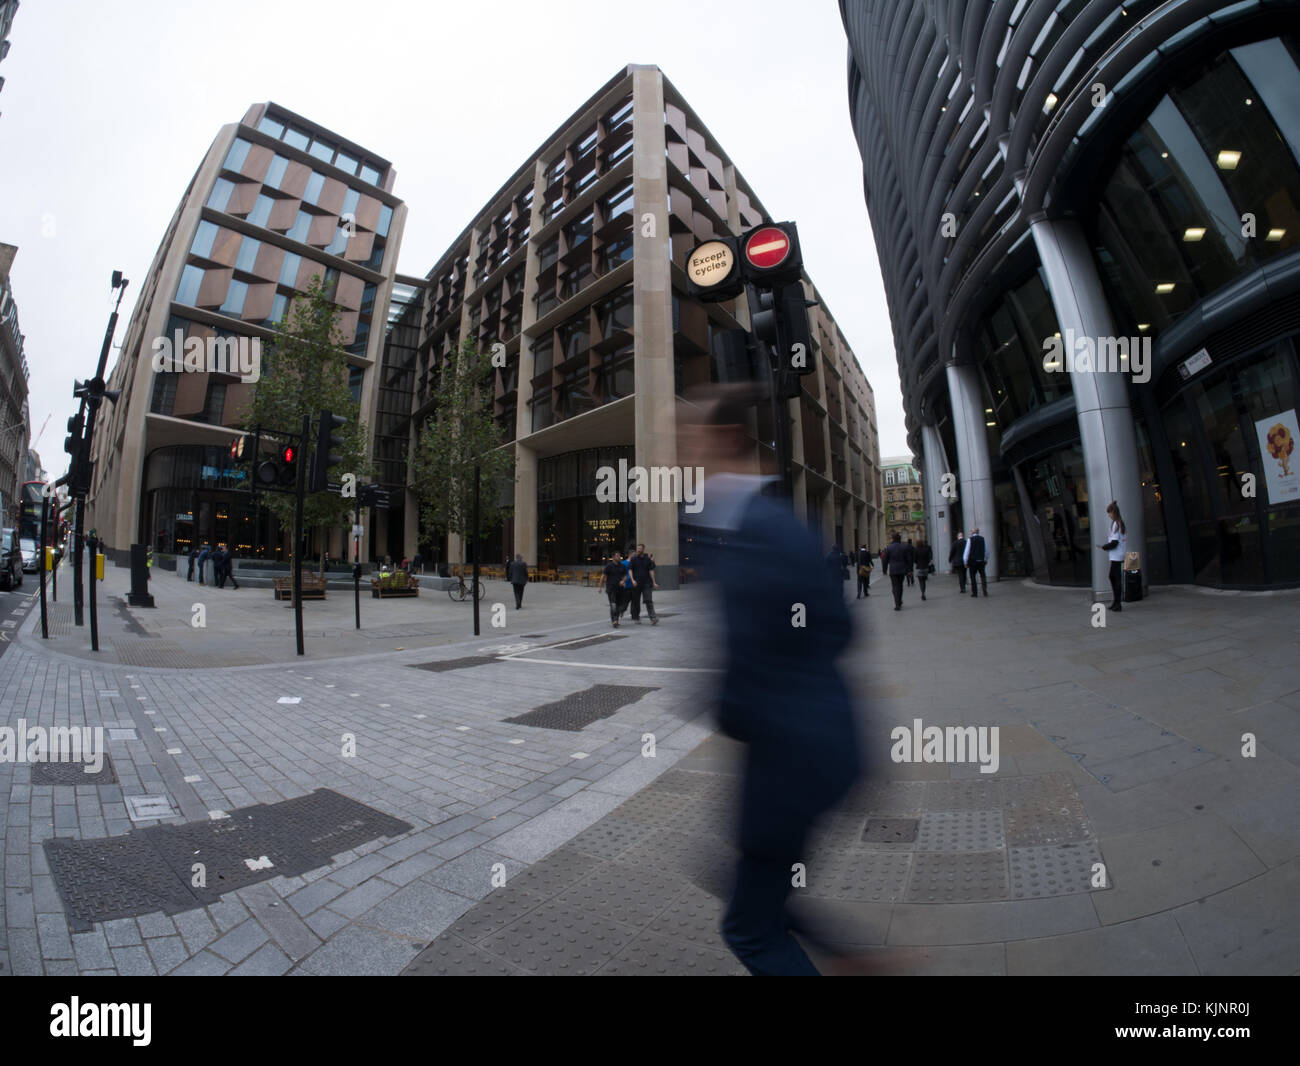 new Bloomberg London building headquarters London, built in 2017 - Stock Image